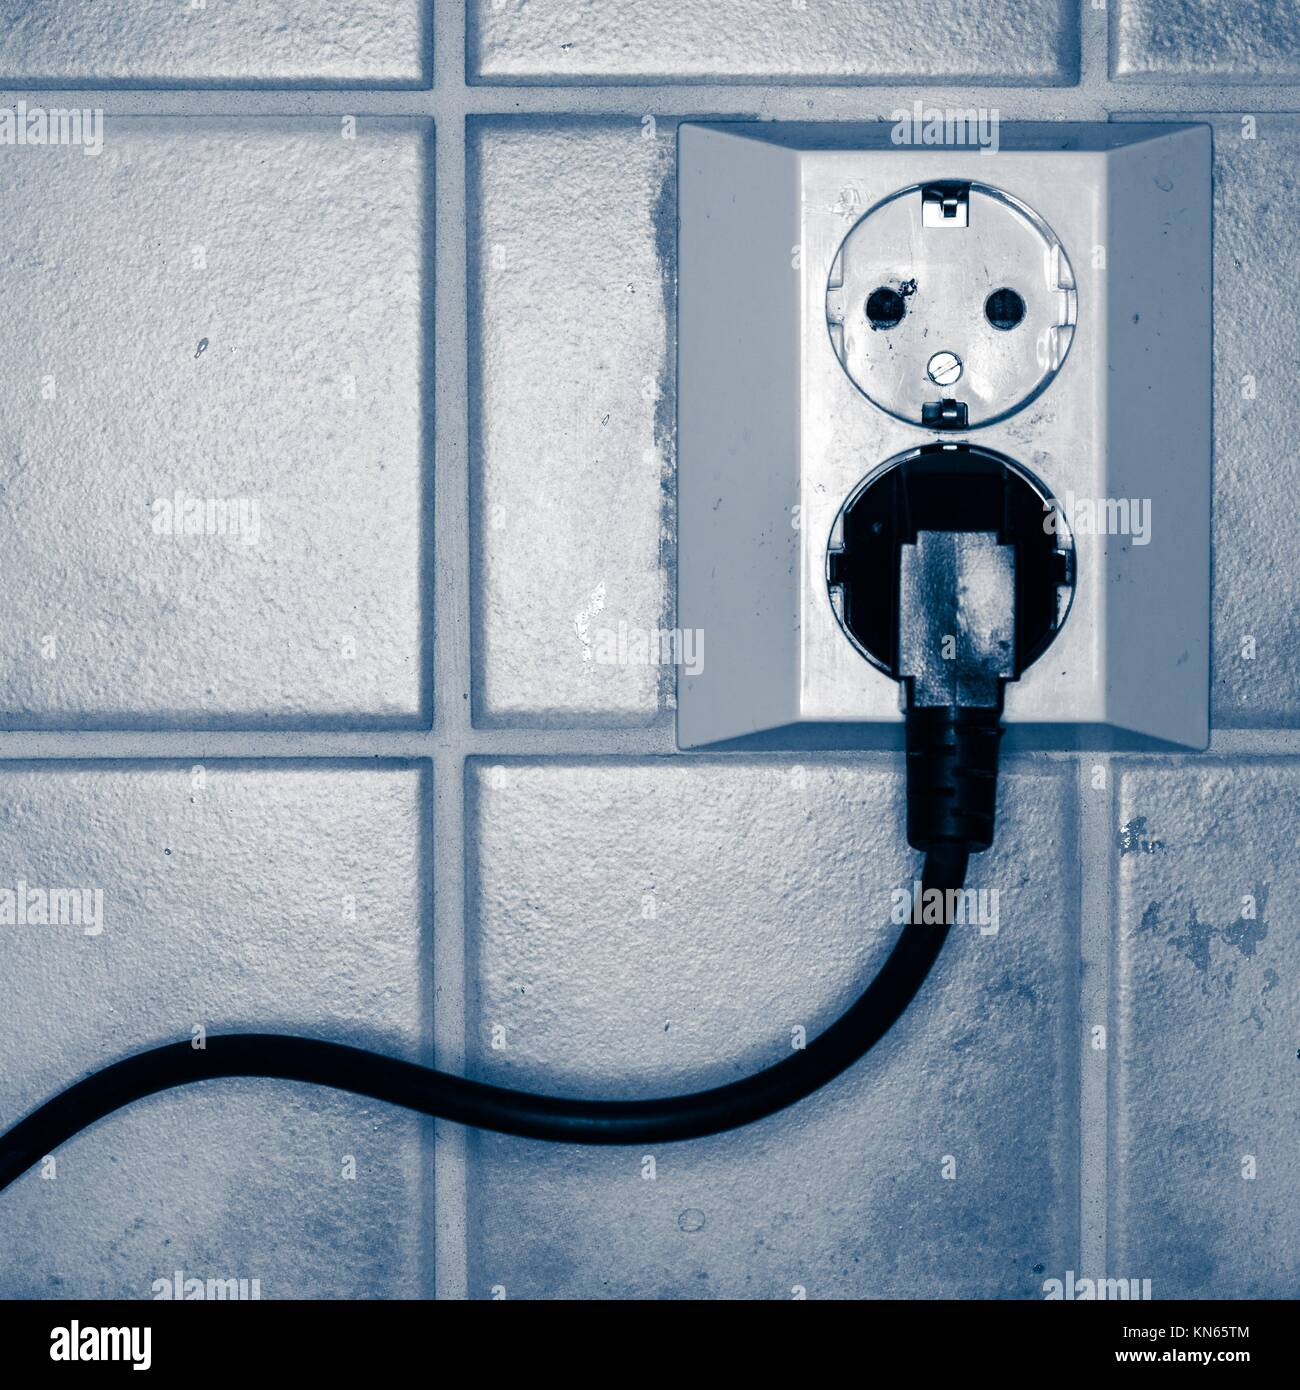 Power Cable Plugged Wall Stock Photos & Power Cable Plugged Wall ...